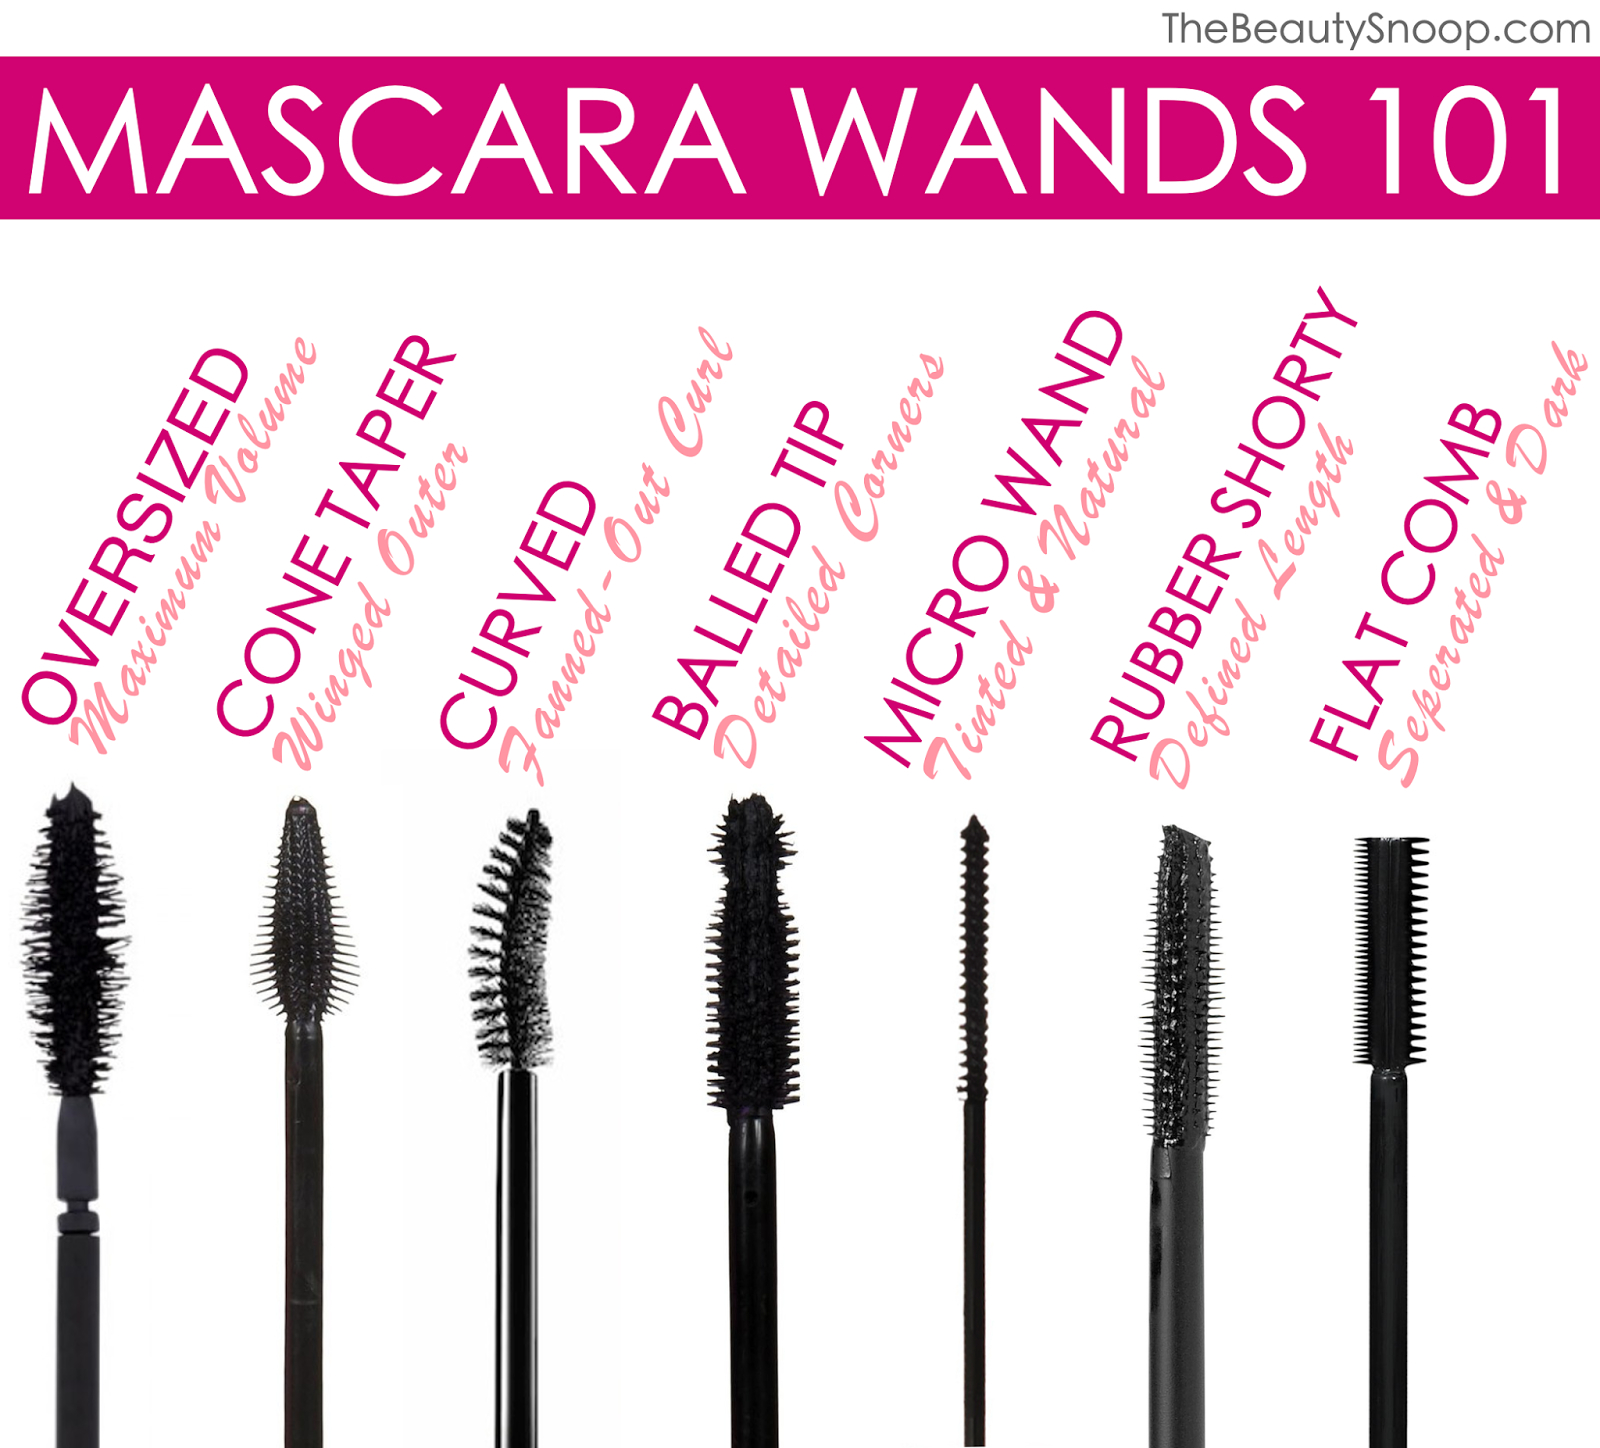 Mascara history tips vegan recipes and tutorials for Mascara with comb wand